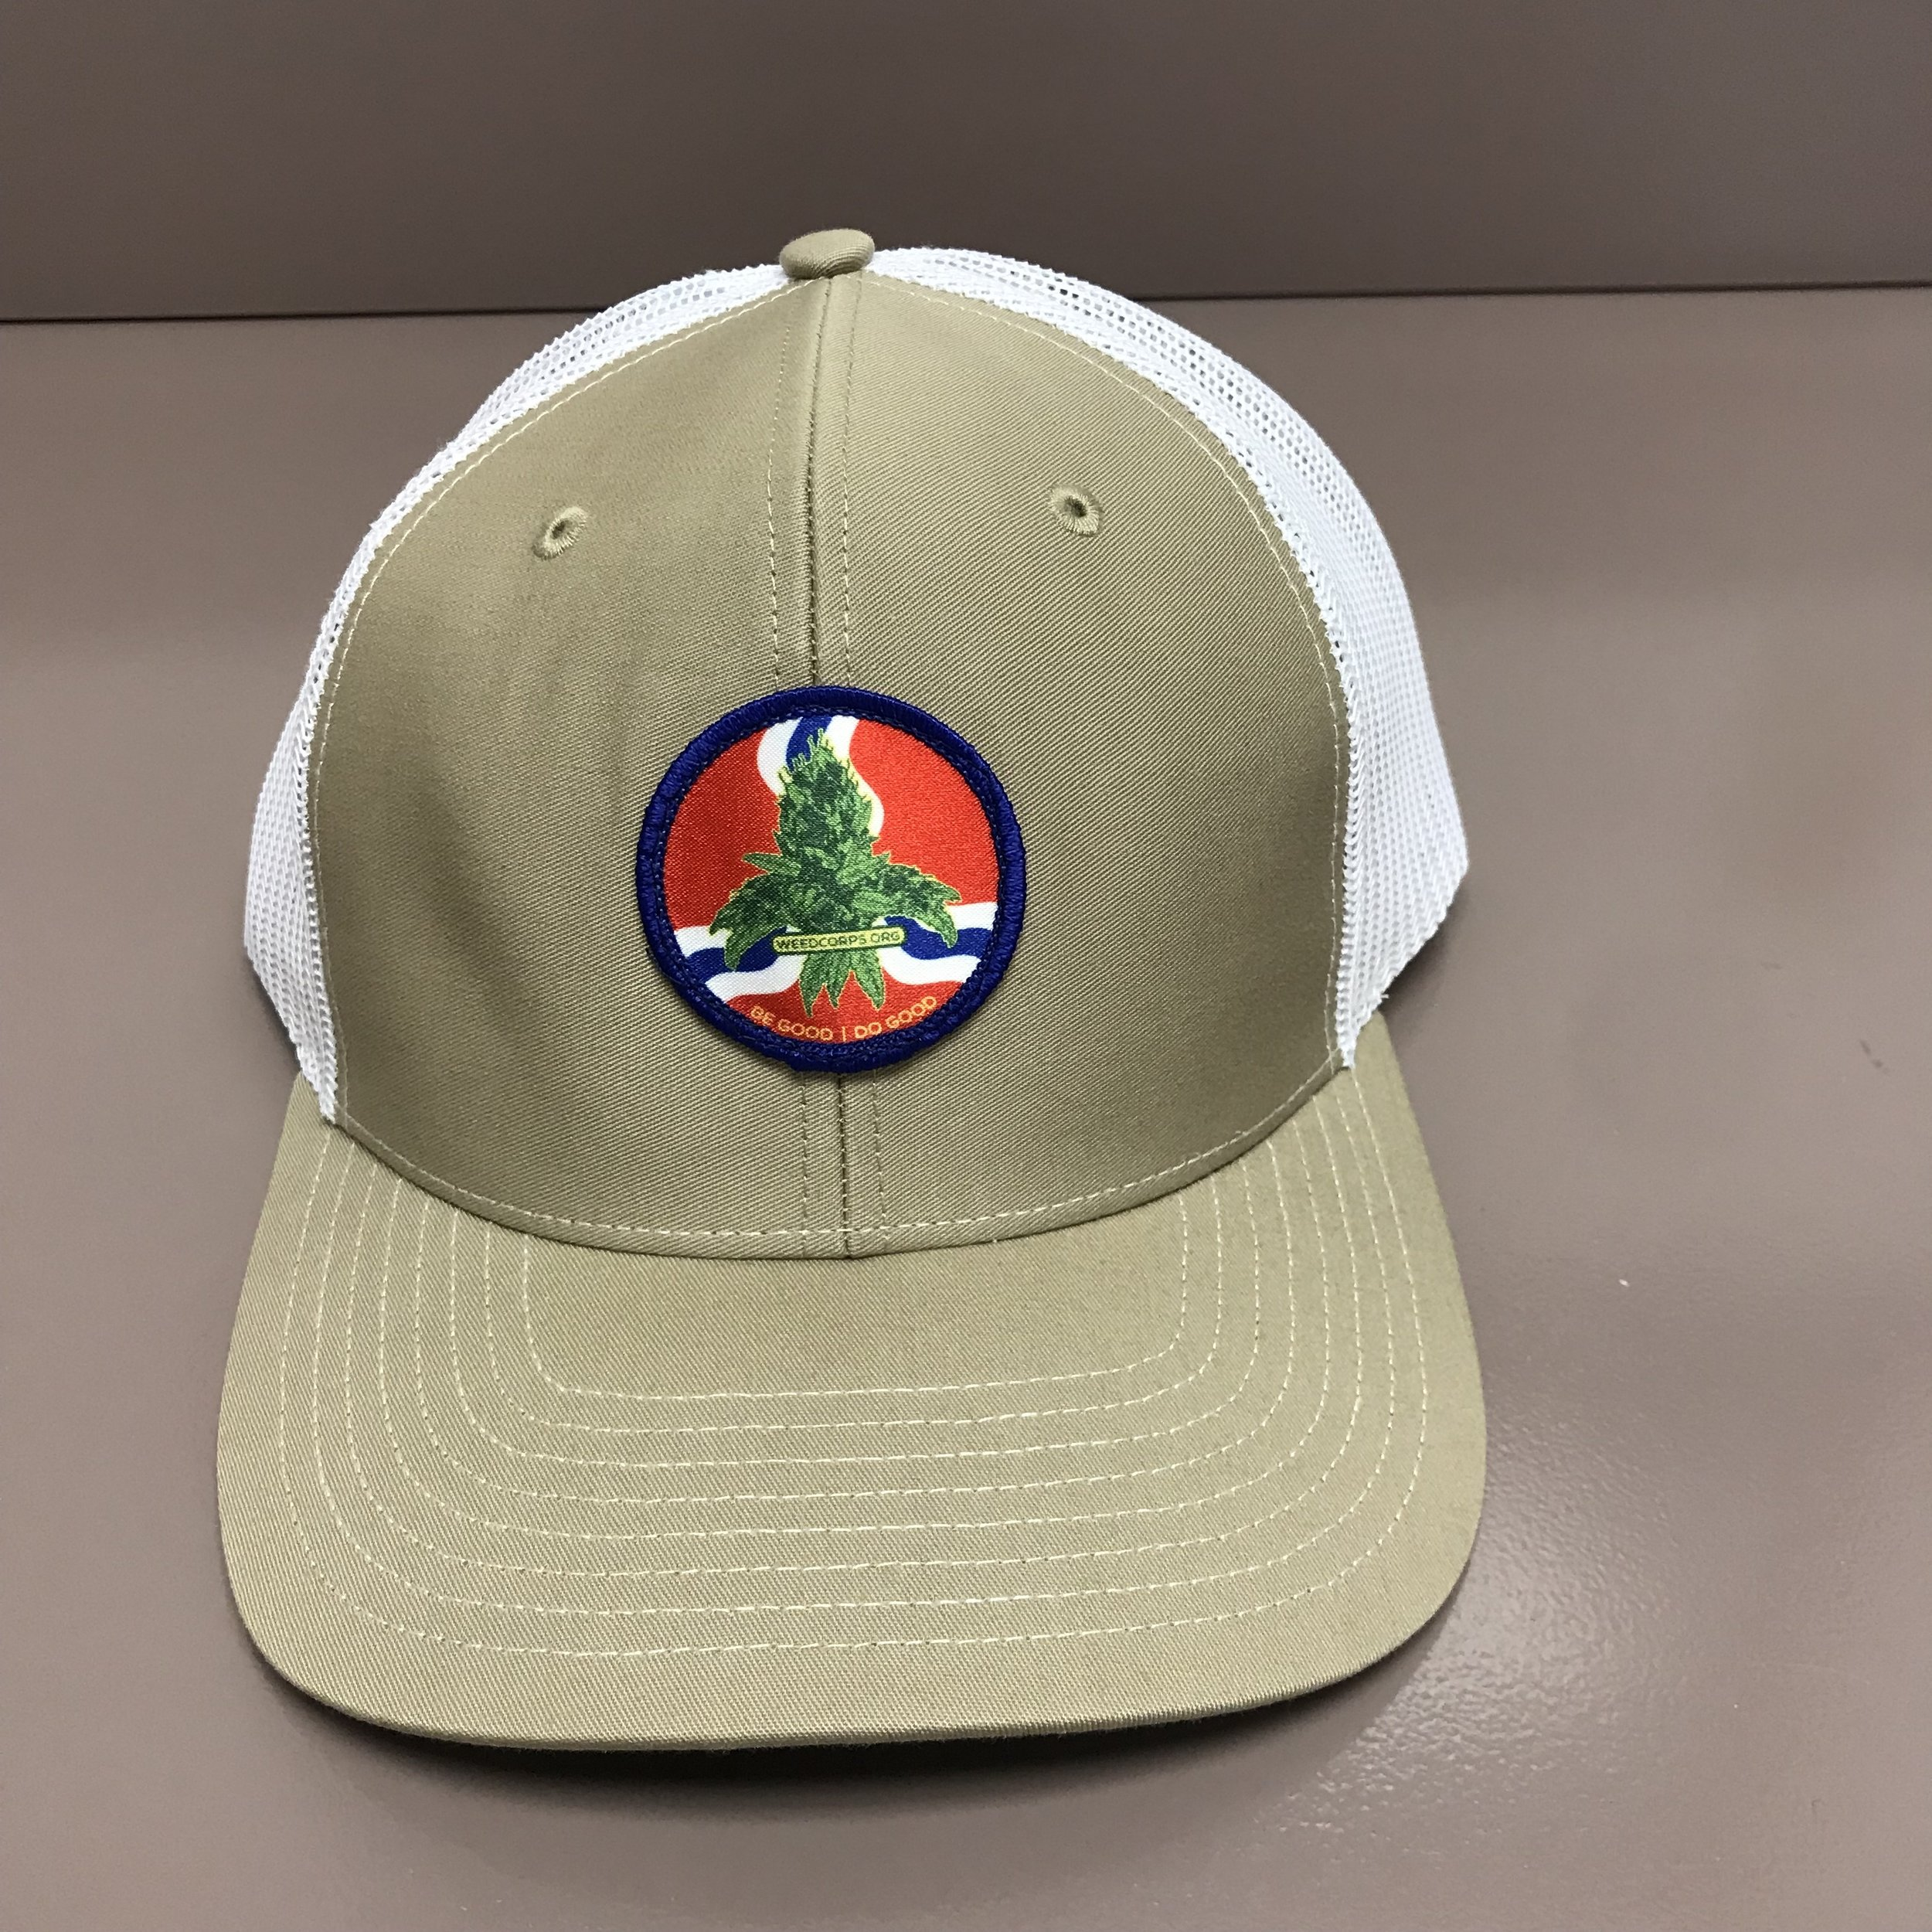 2nd Edition Hat